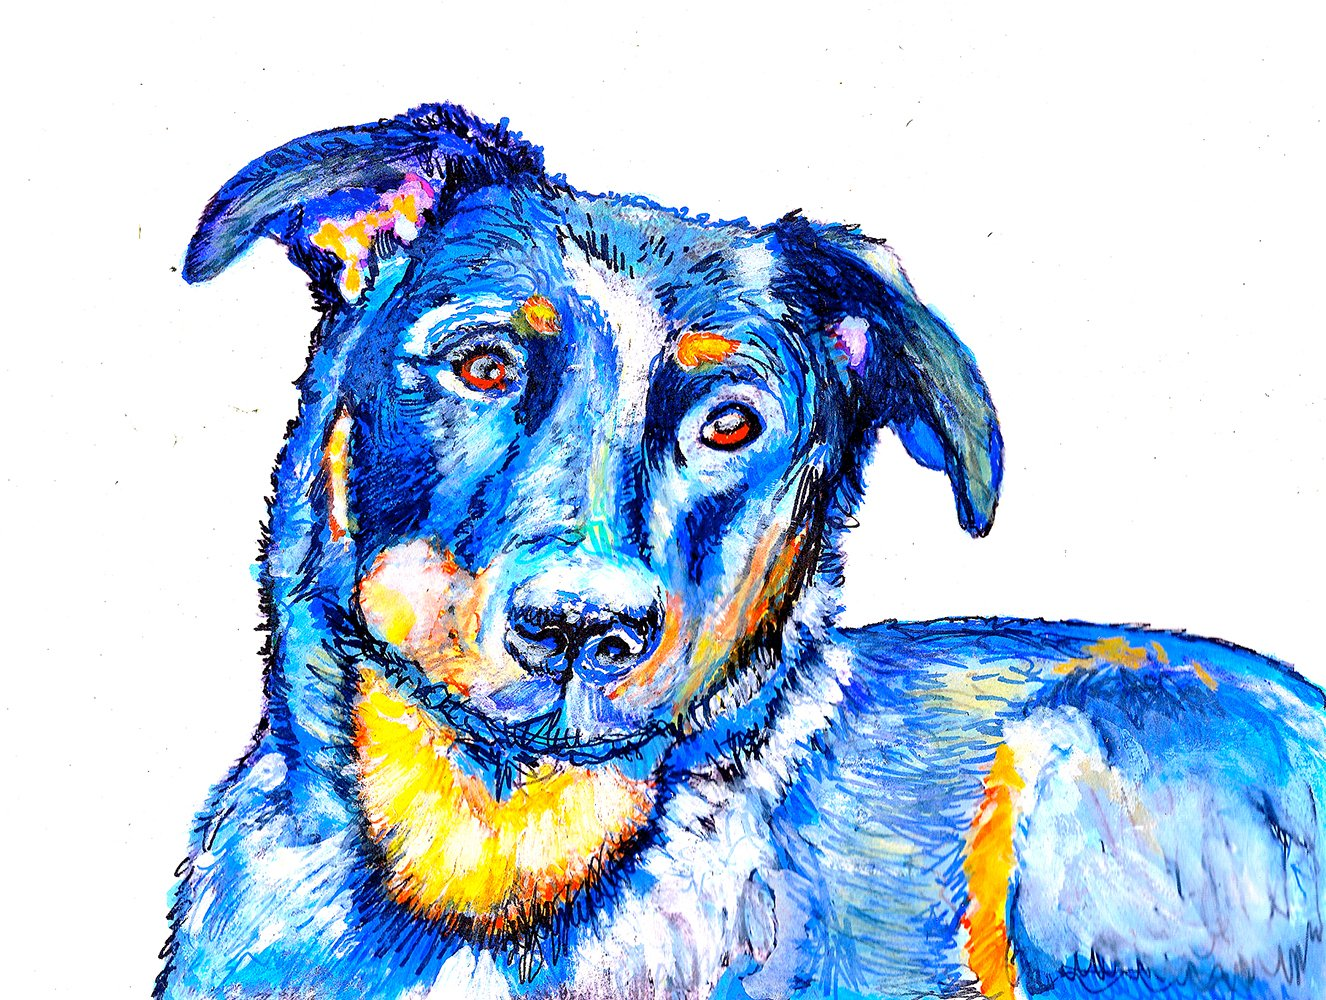 Colourful Beauceron, beauceron gifts, Beauceron Wall Art Print, Blue Beauceron Painting, Dog Owner Gift, Dog Picture, Dog Wall Art Print, Beauceron Dog Decor